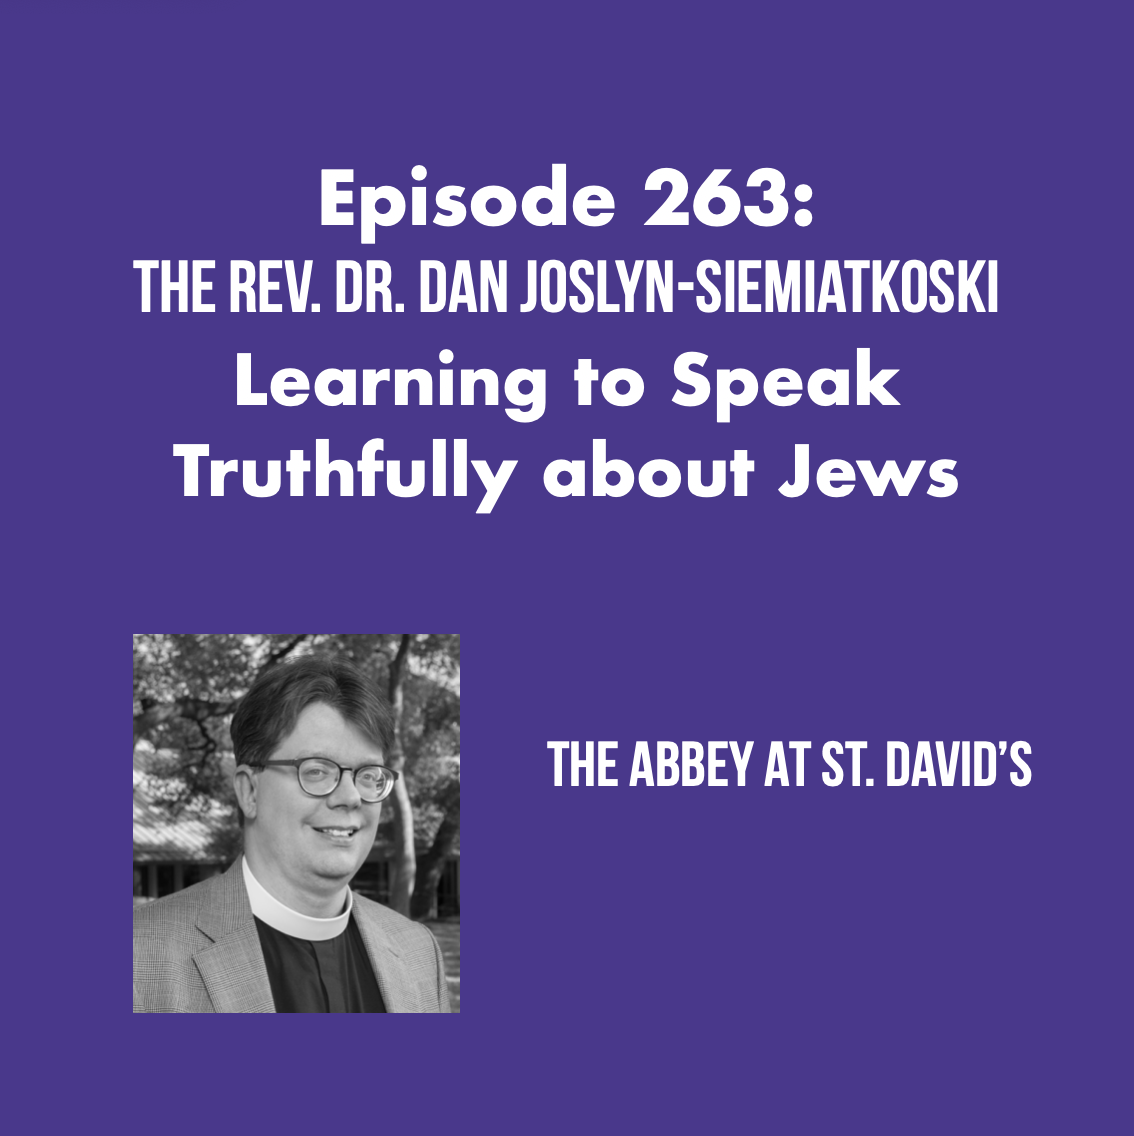 Episode 263: Learning To Speak Truthfully About Jews Part 2 with The Rev. Dr. Dan Joslyn-Siemiatkoski